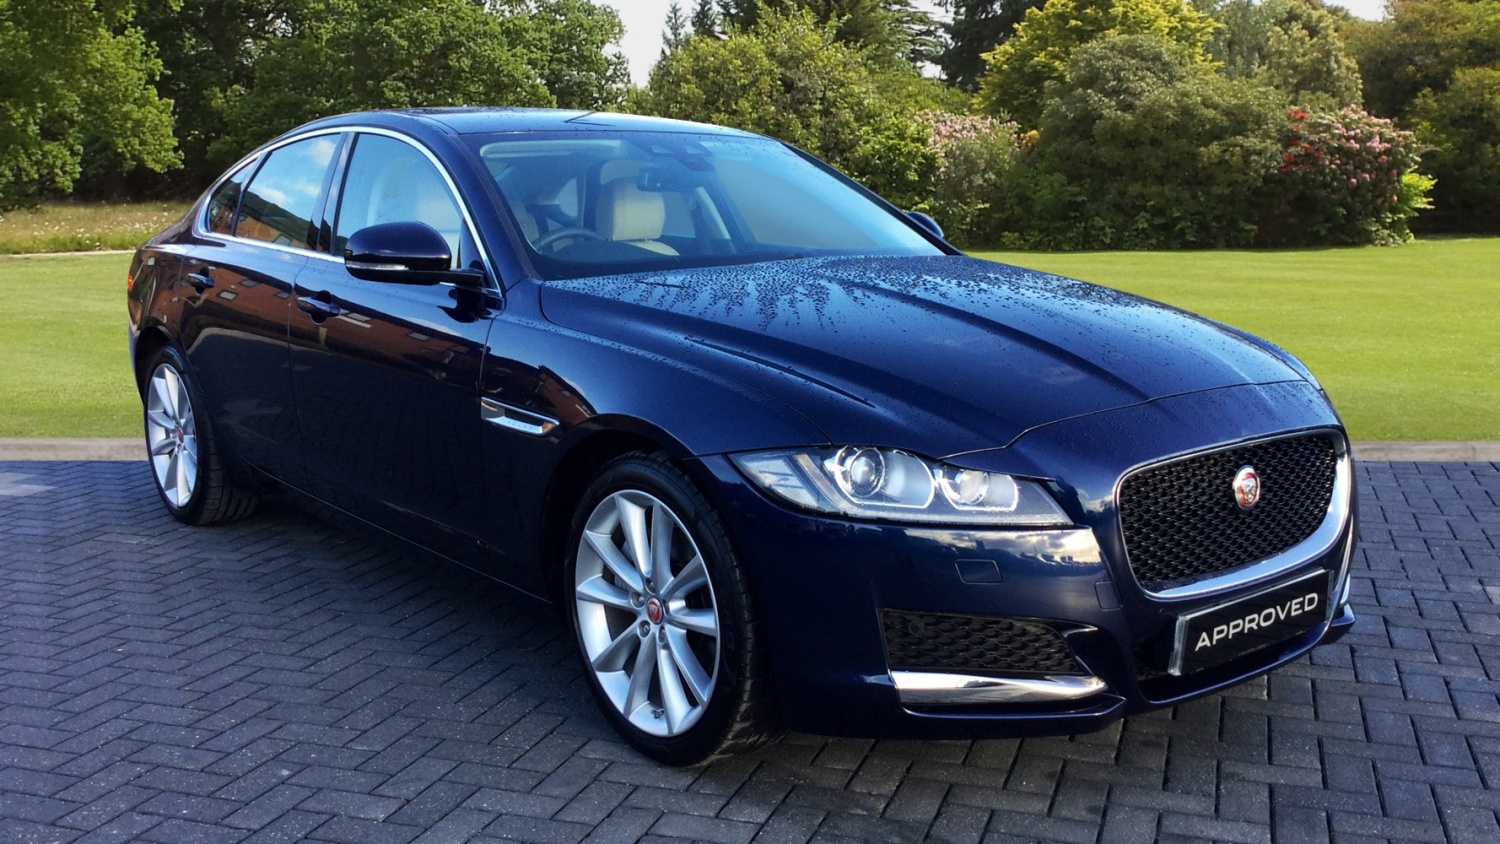 used jaguar xf 2 0d 180 portfolio 4dr auto diesel saloon for sale farnell jaguar. Black Bedroom Furniture Sets. Home Design Ideas